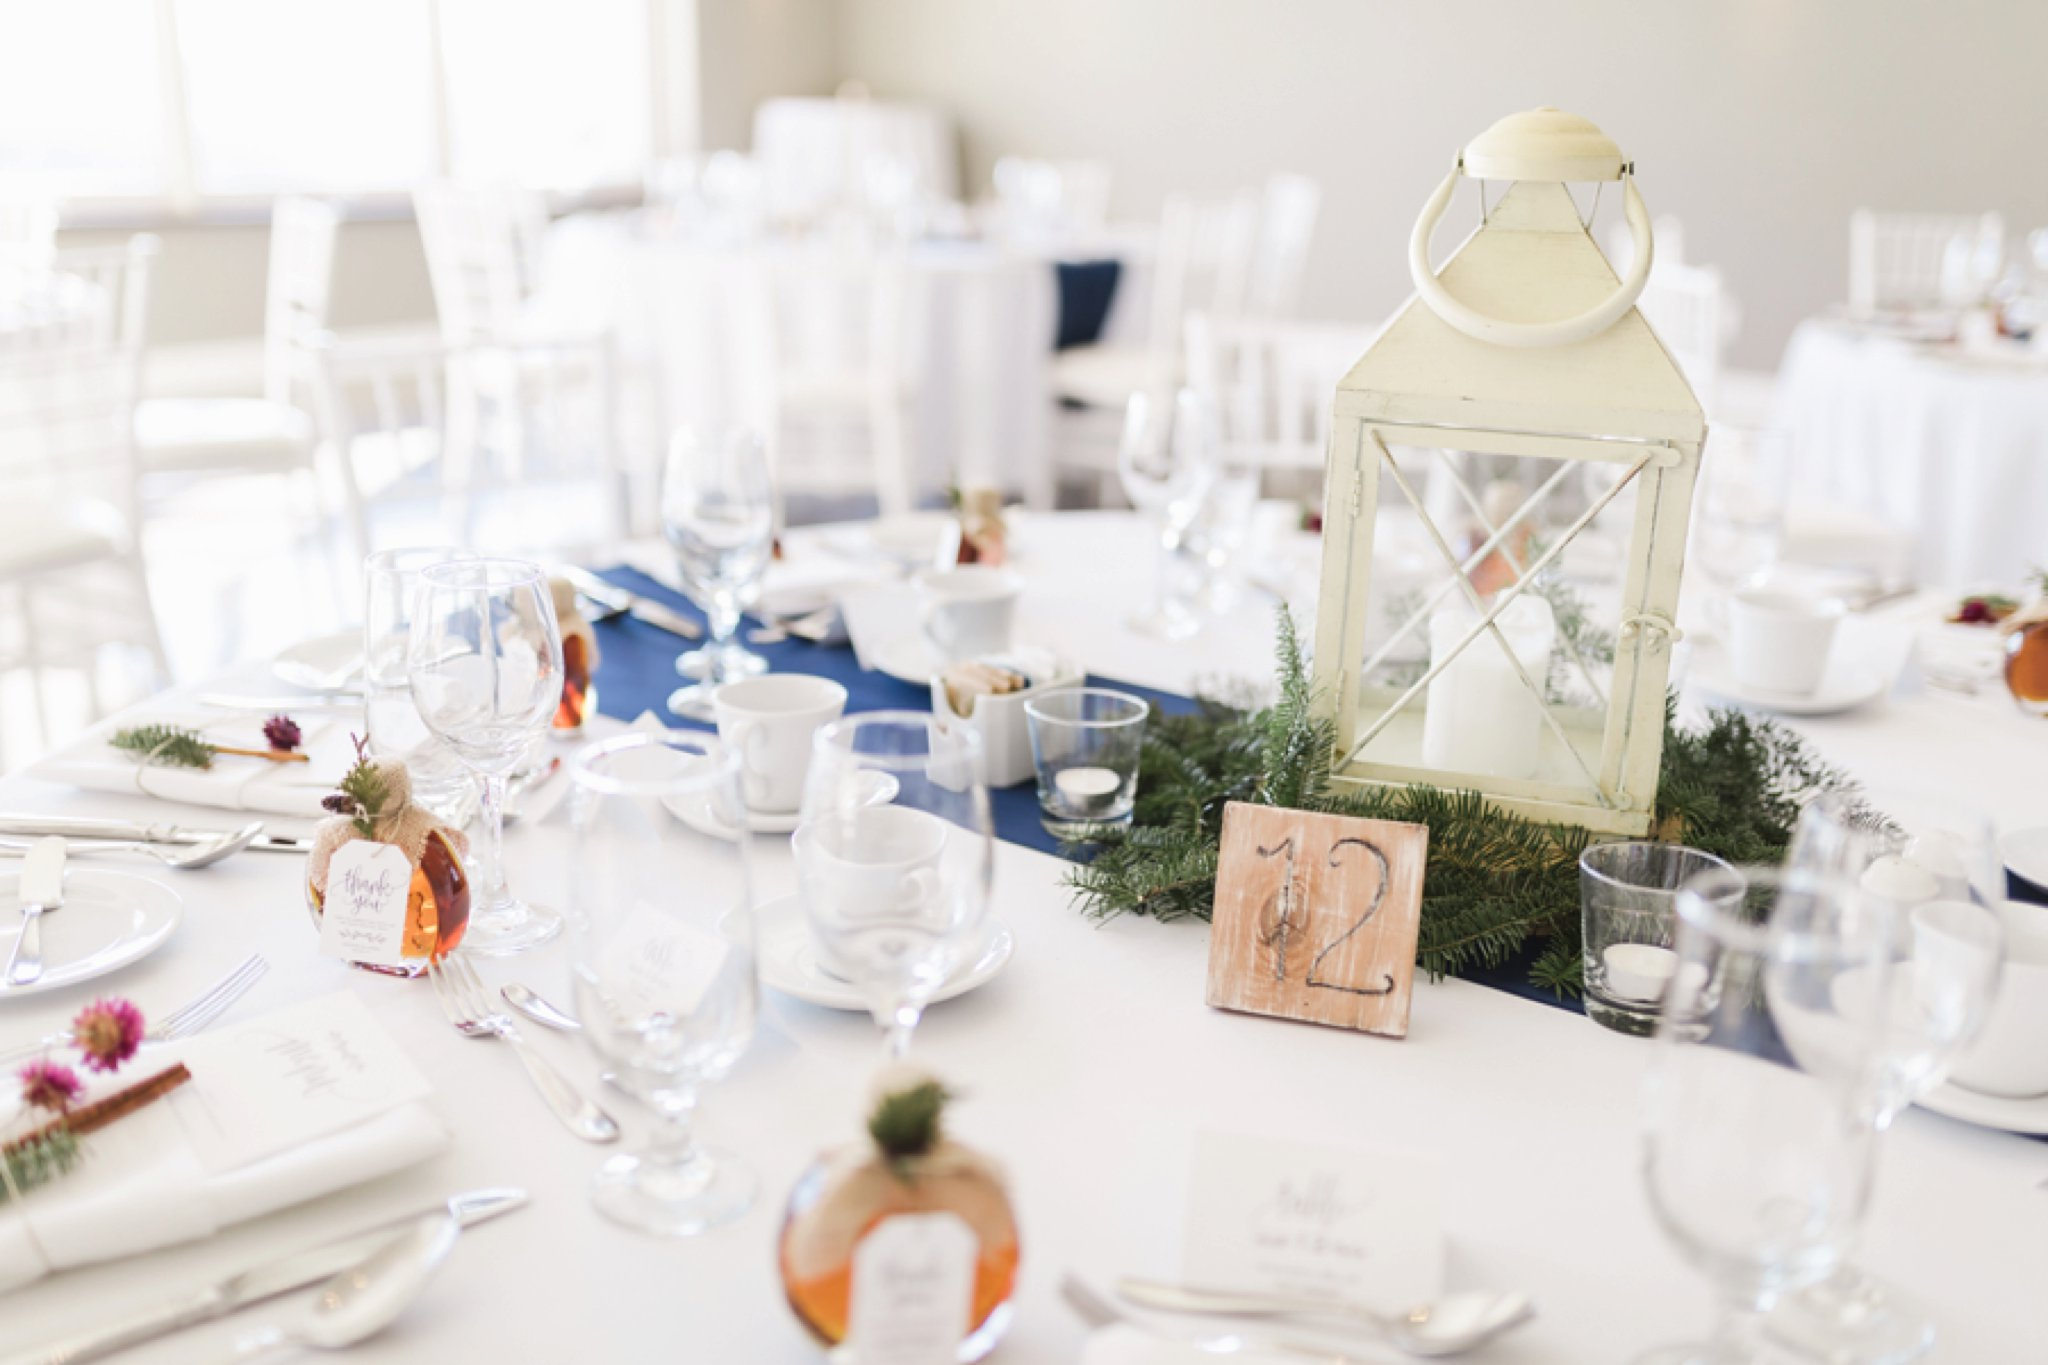 Lanterns and navy accents at the Winter wedding at Le Belvedere